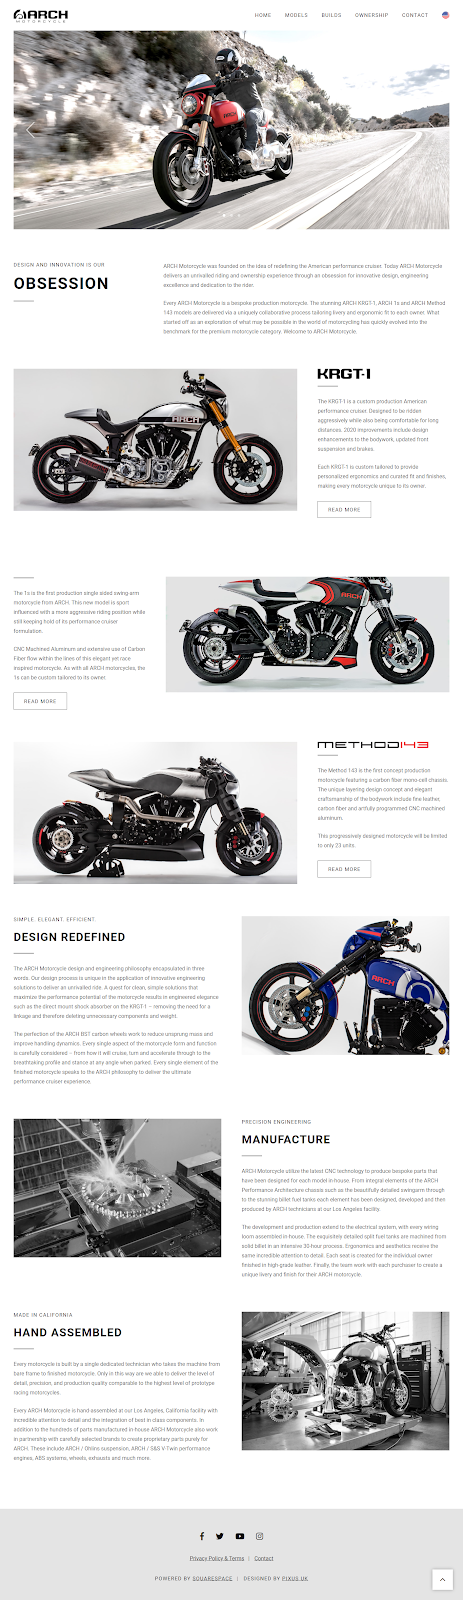 Arch Motorcycle website